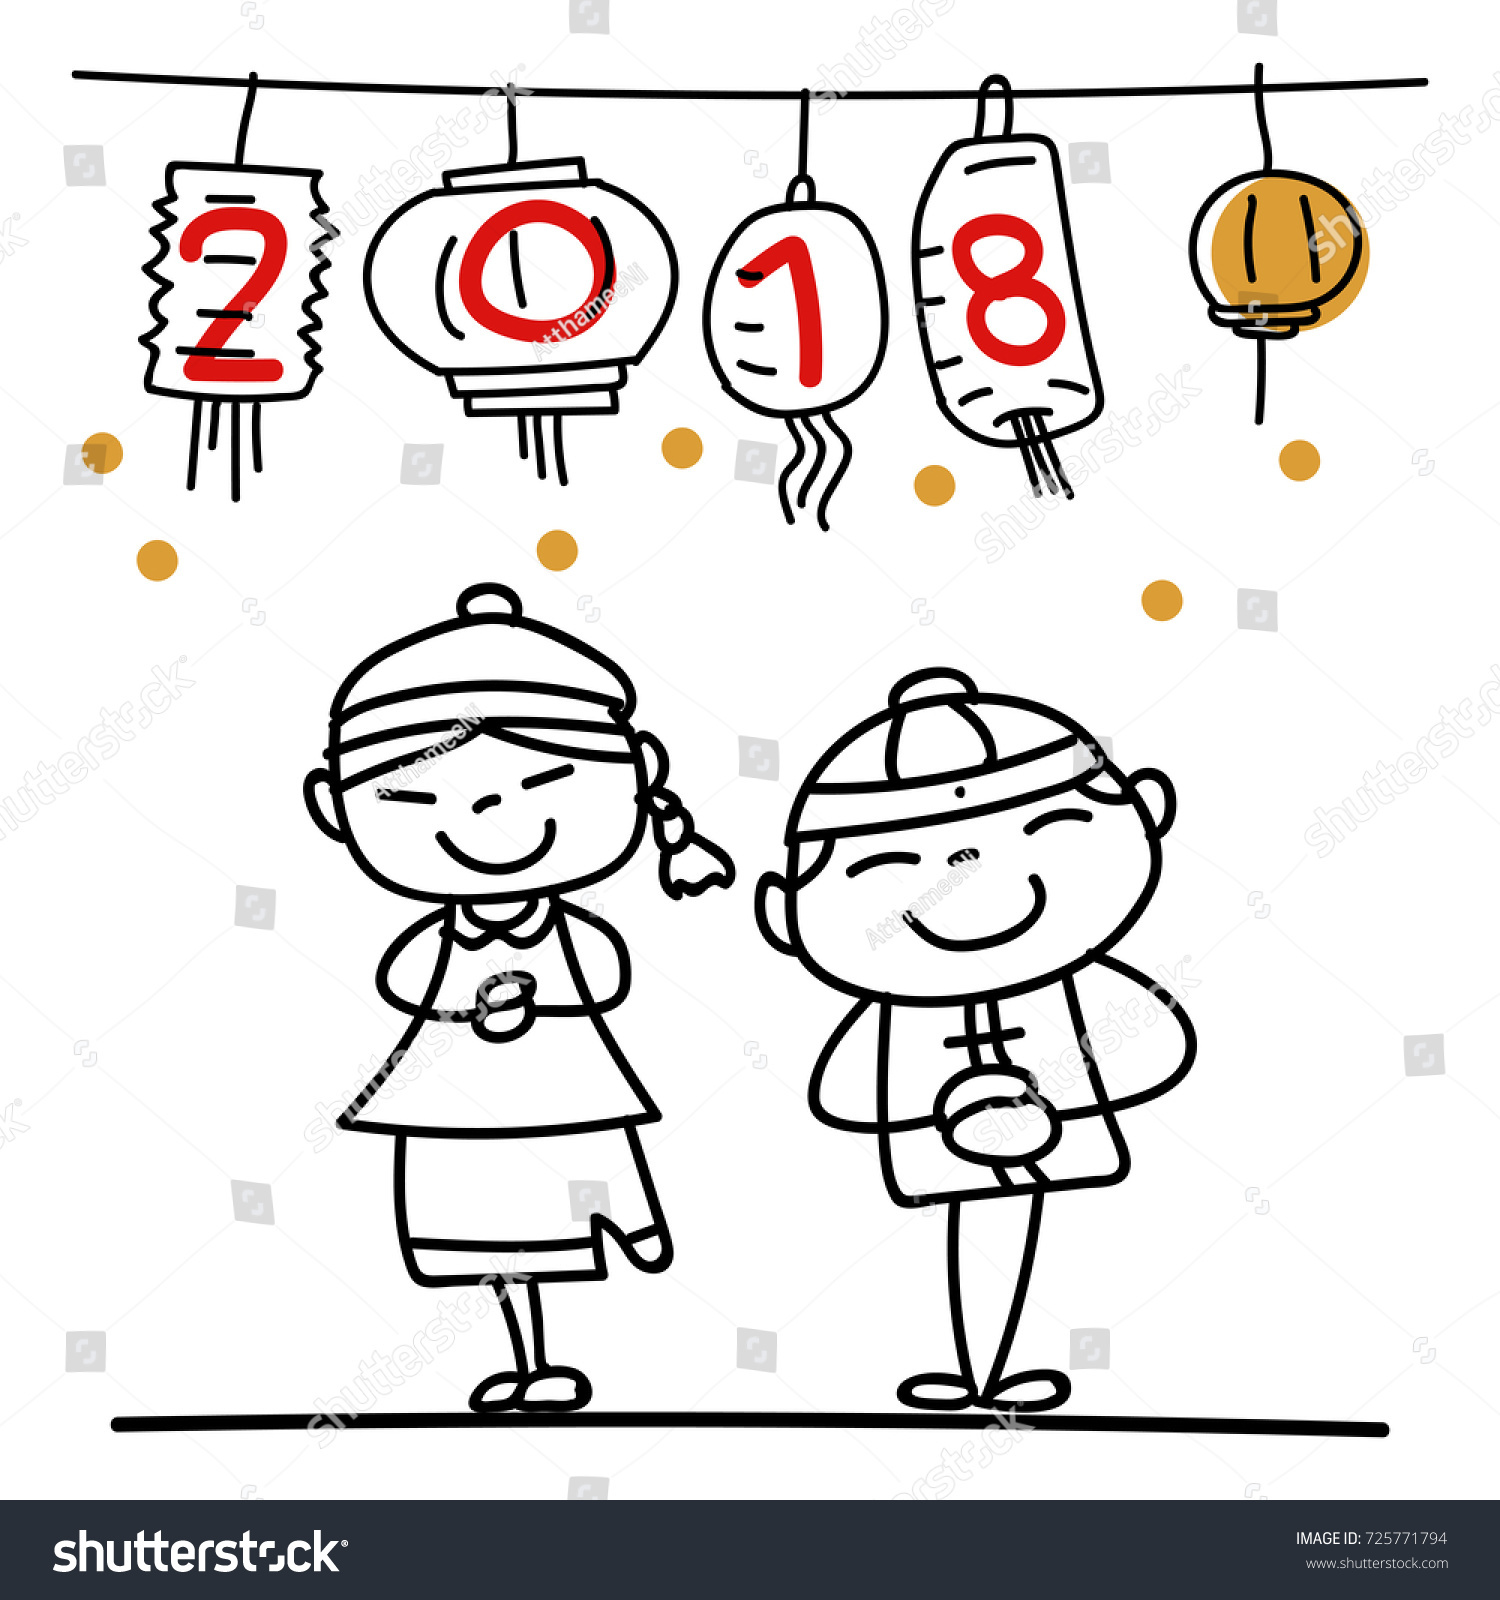 new year drawing cartoon